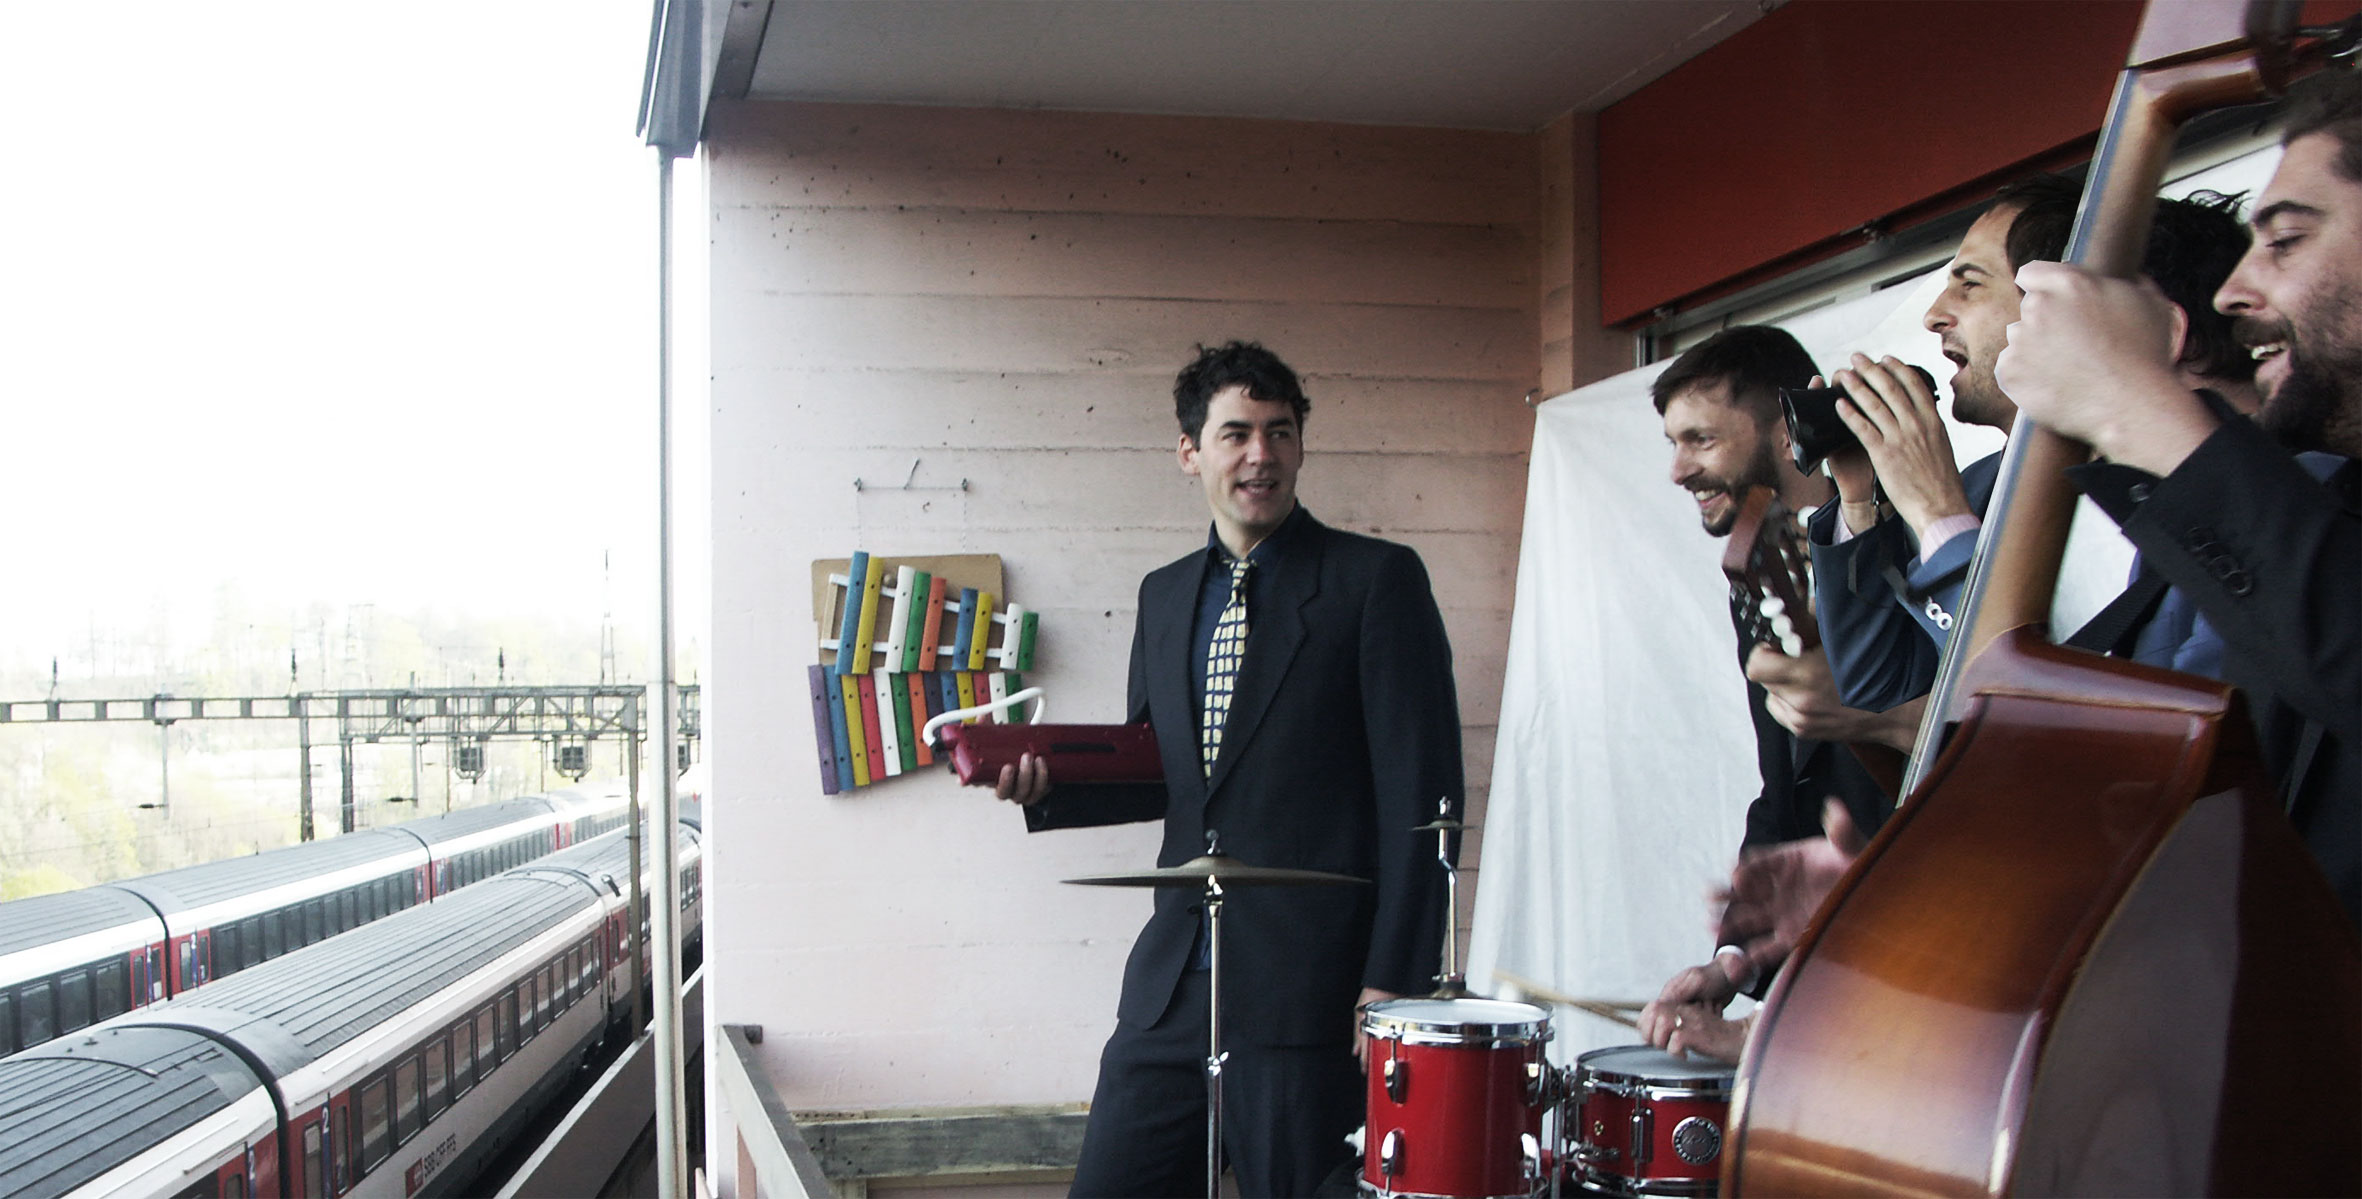 Captain Frank (Band) on the Balcony (2014).jpg